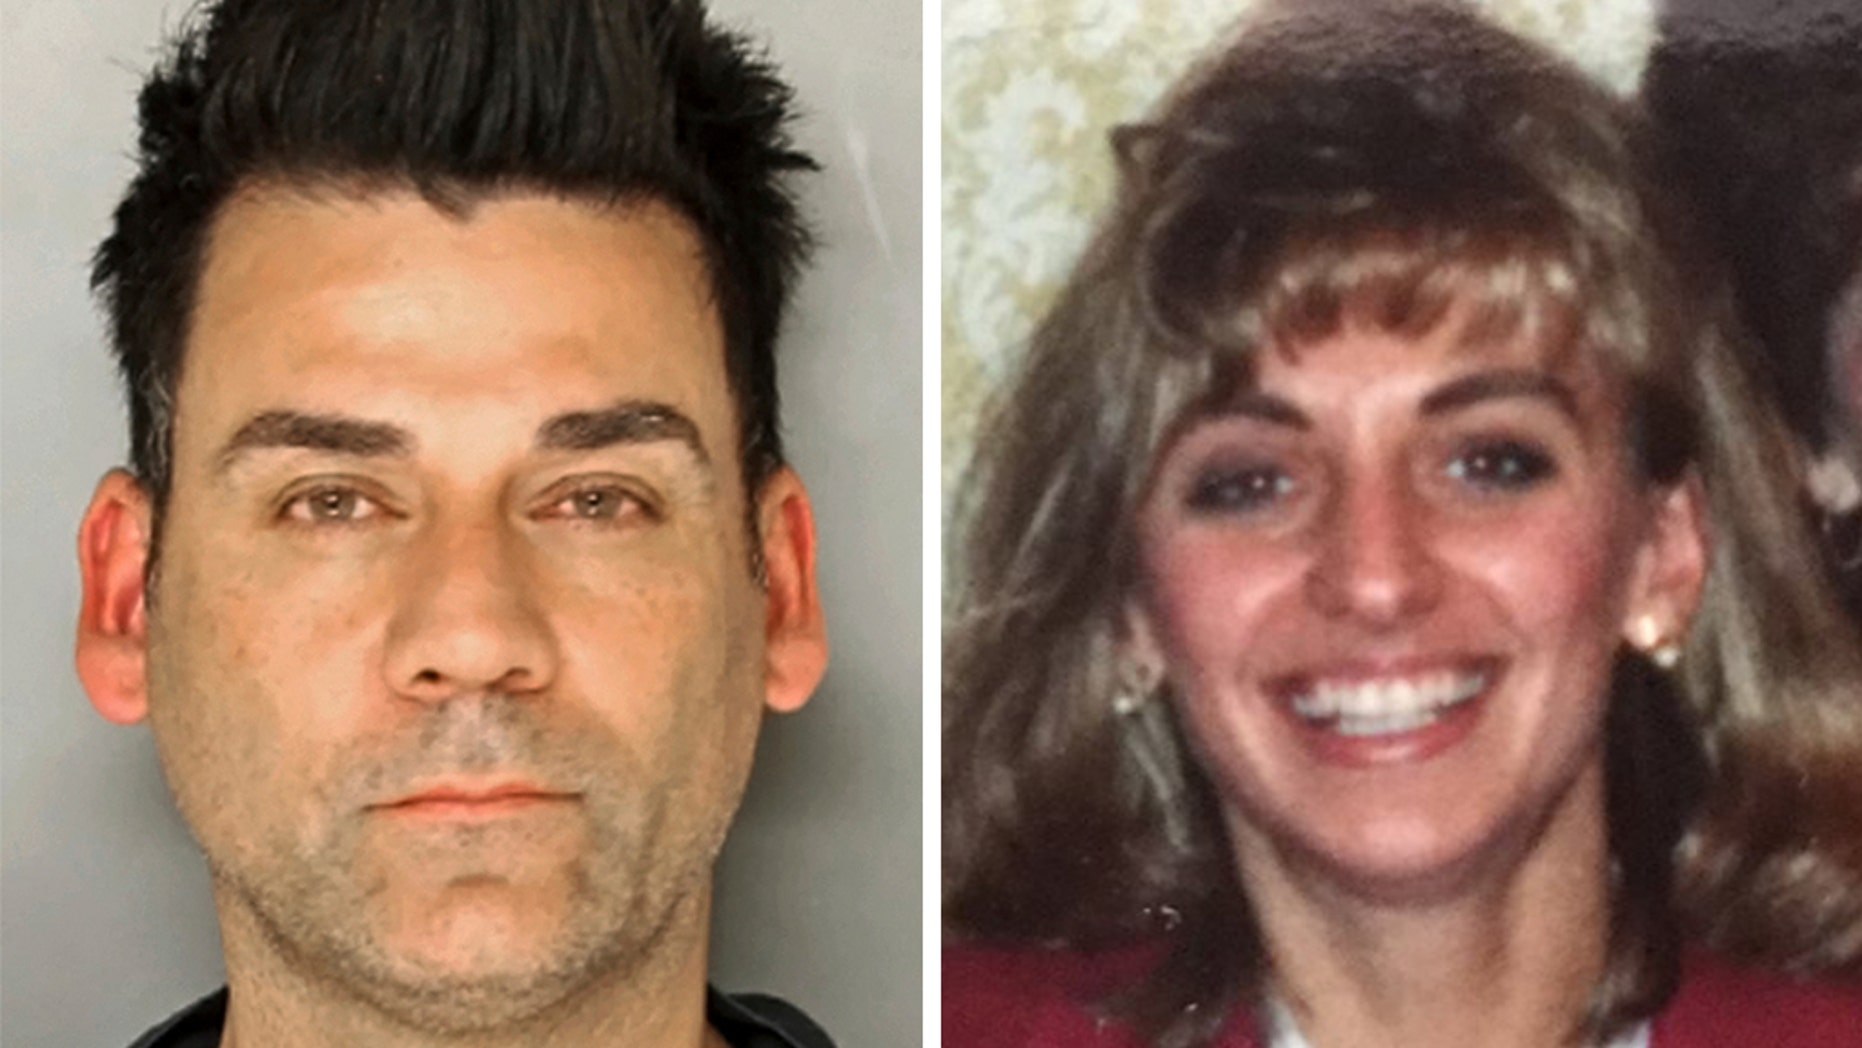 June 25, 2018, photo provided by the Lancaster County District Attorney's Office shows Raymond Charles Rowe, of Lancaster, Pennyslvania, a disc jockey found guilty of criminal homicide in the 1992 strangulation death of schoolteacher Christy Mirack (R).